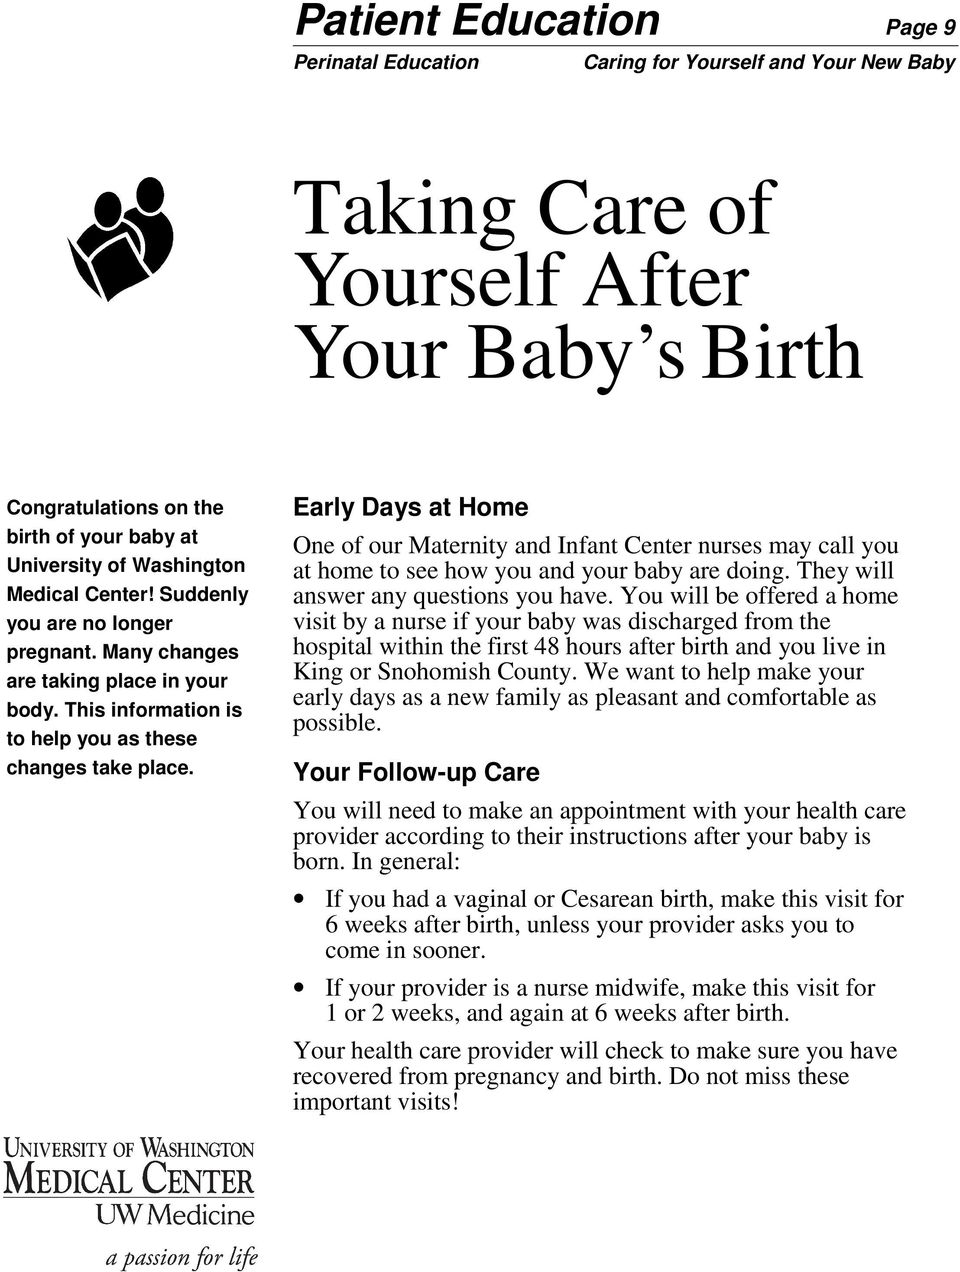 Early Days at Home One of our Maternity and Infant Center nurses may call you at home to see how you and your baby are doing. They will answer any questions you have.